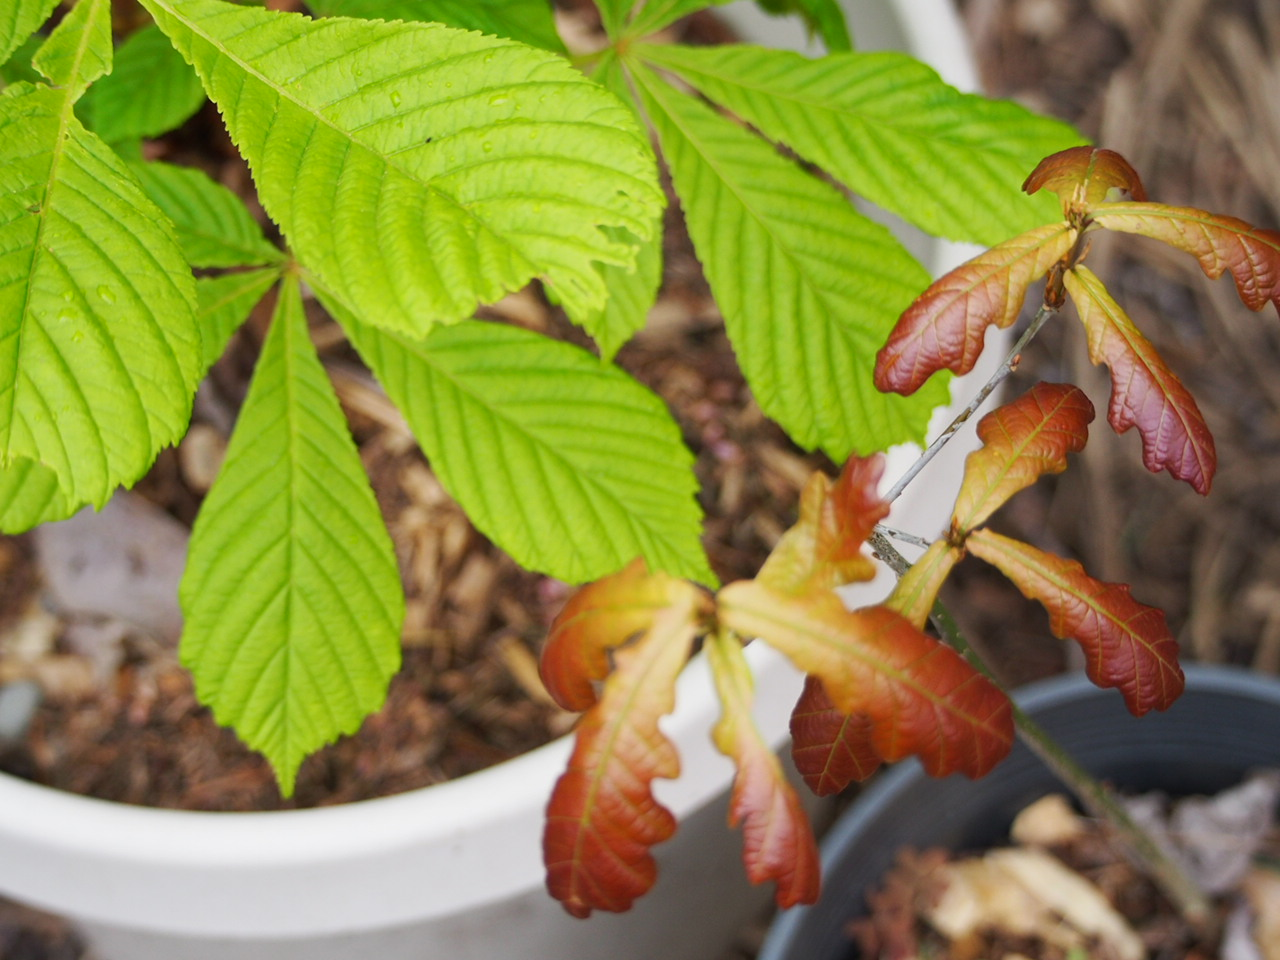 A Horse chestnut and oak rescued last year and awaiting a new home.